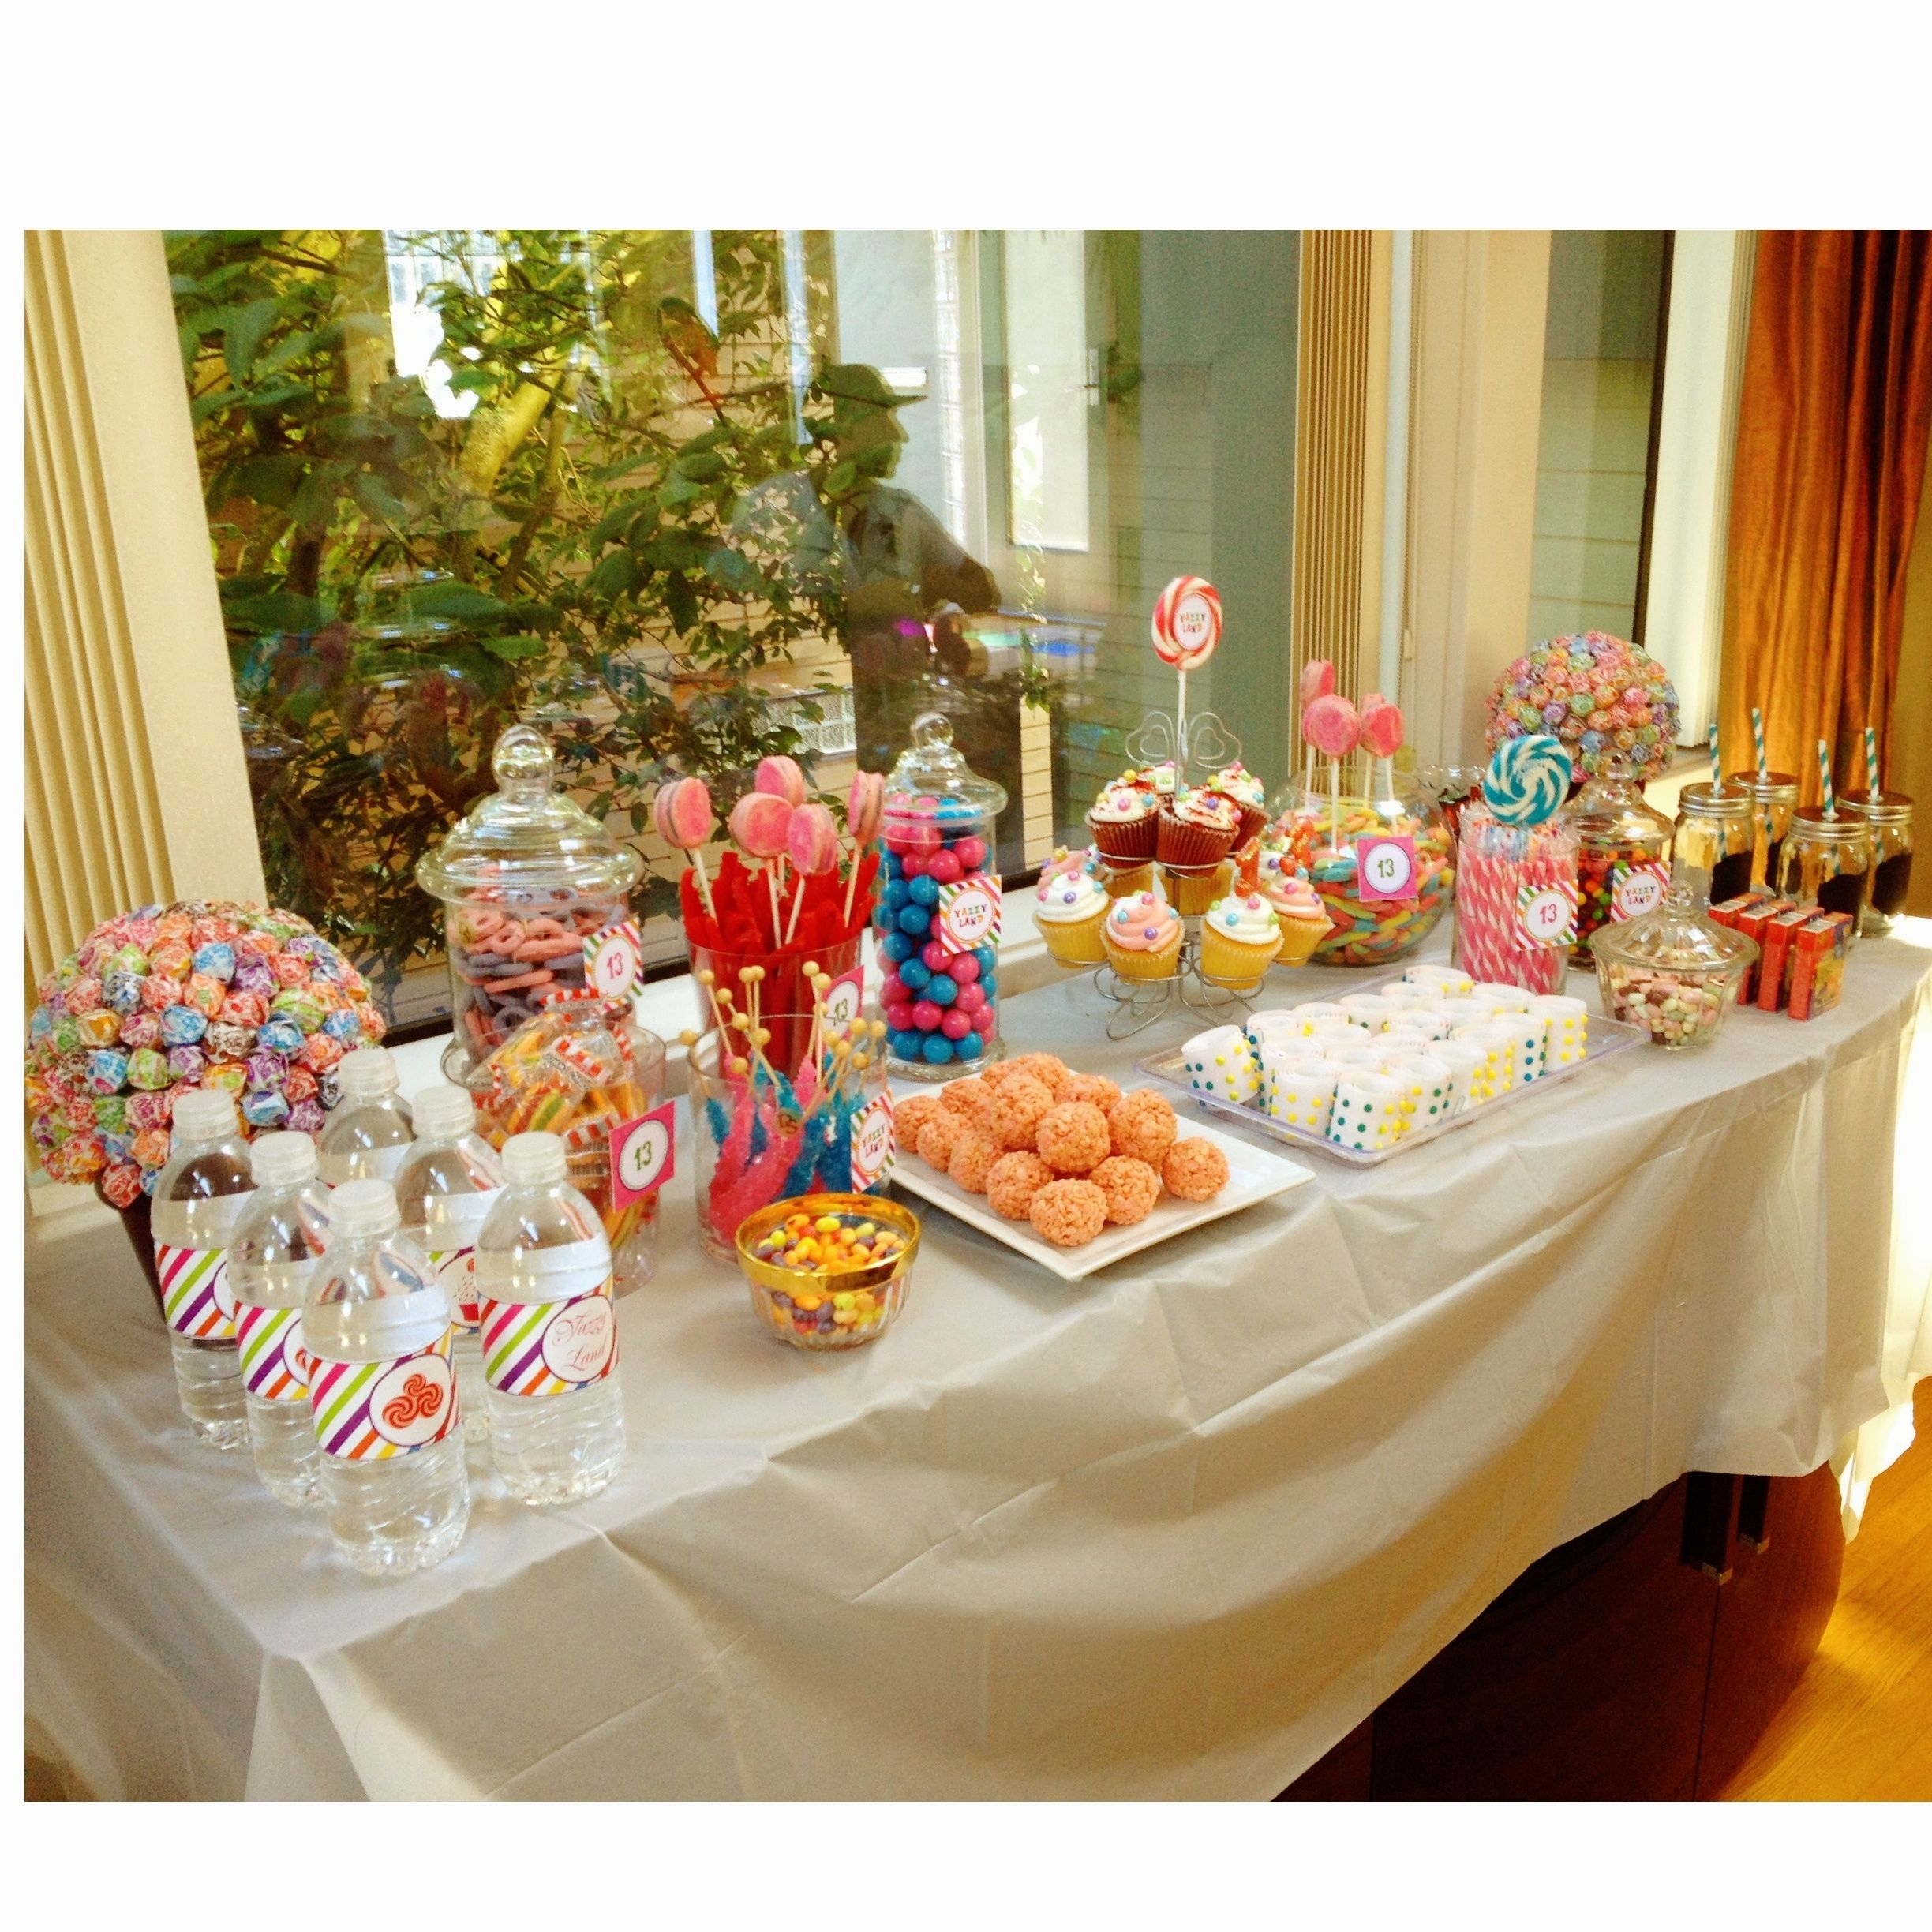 Candy Buffet Ideas For Desiree's Sweet Sixteen (use Www